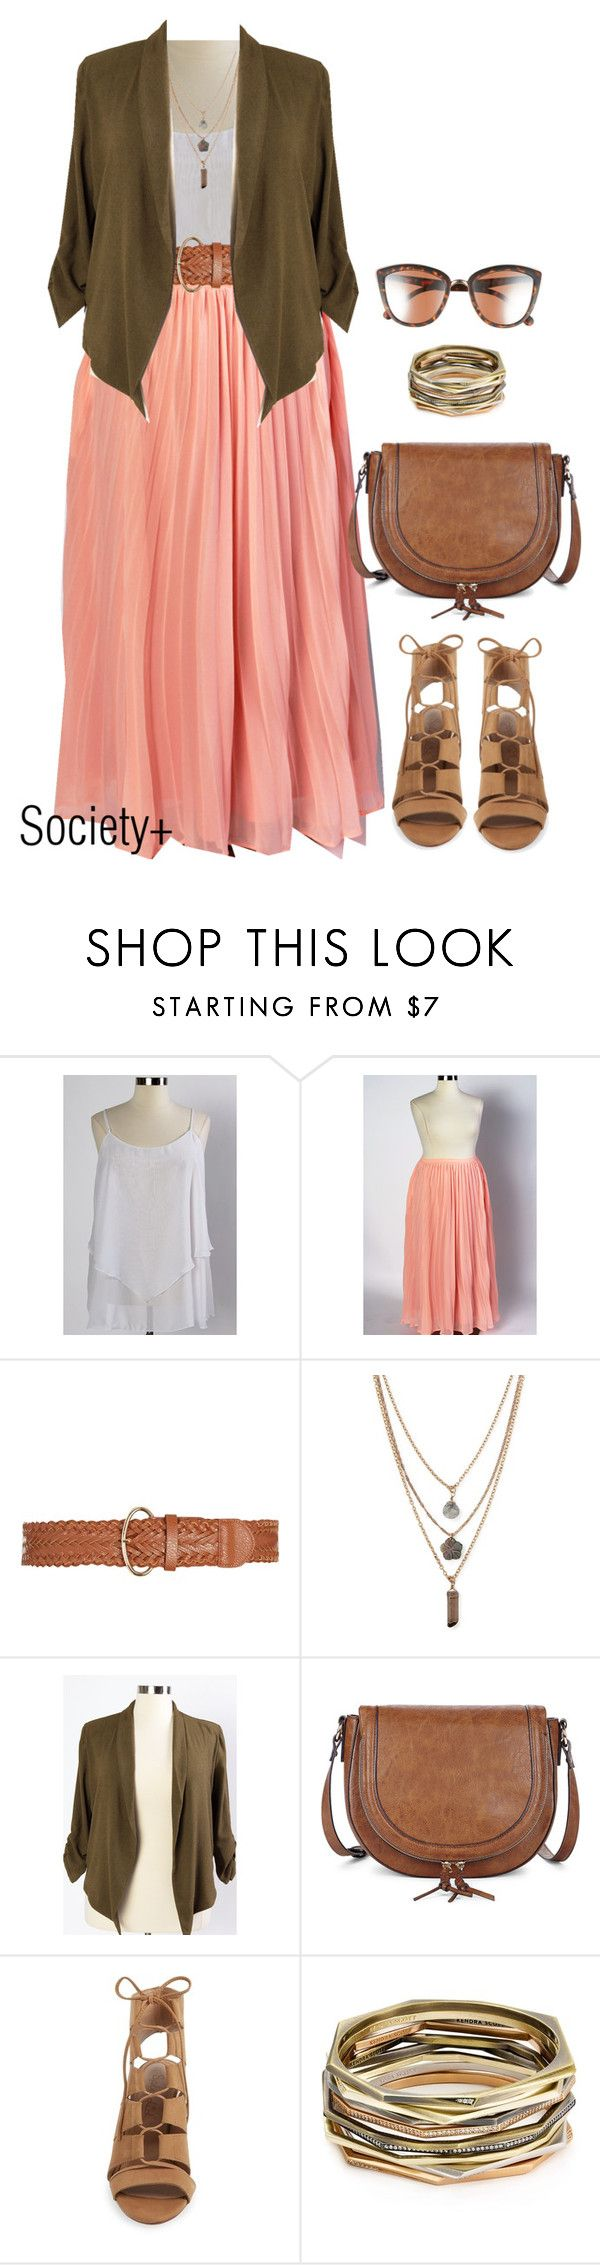 """Plus Size Pleated Skirt - Society+"" by iamsocietyplus on Polyvore featuring Forever 21, Sole Society, Splendid, Kendra Scott, BP., plussize, plussizefashion, societyplus and iamsocietyplus"